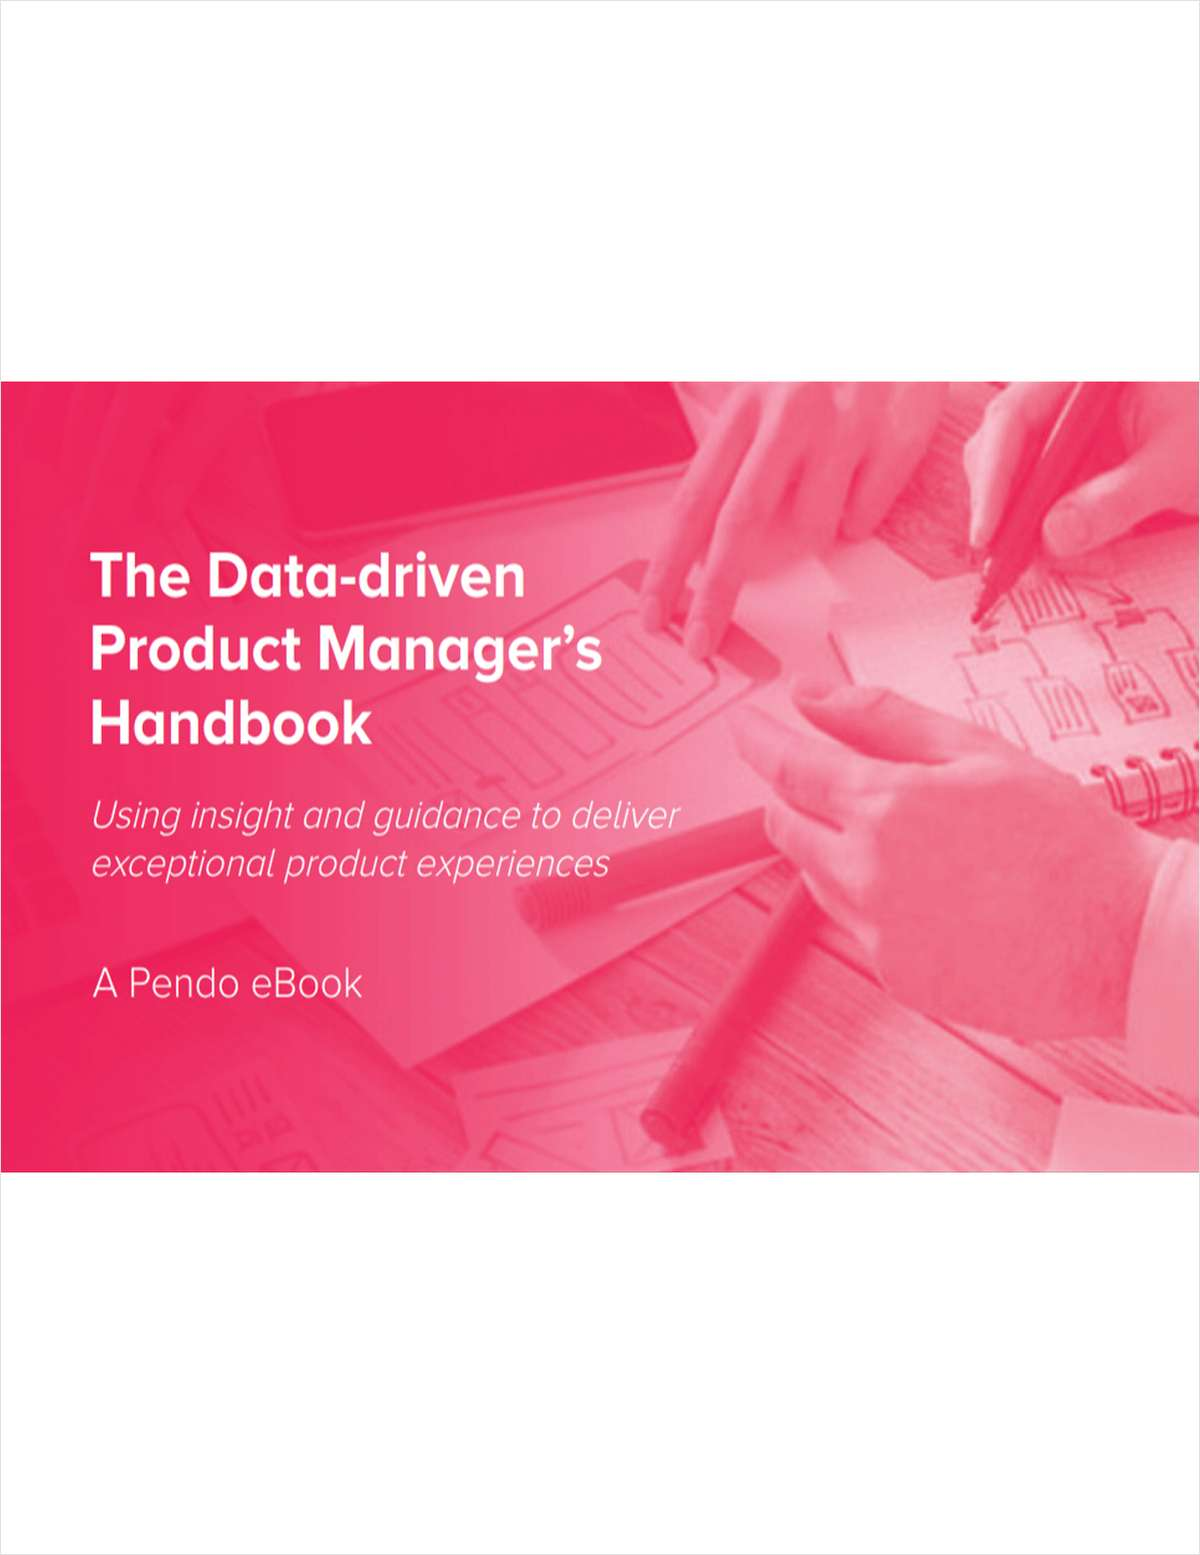 The data driven product managers handbook free pendo ebook fandeluxe Images